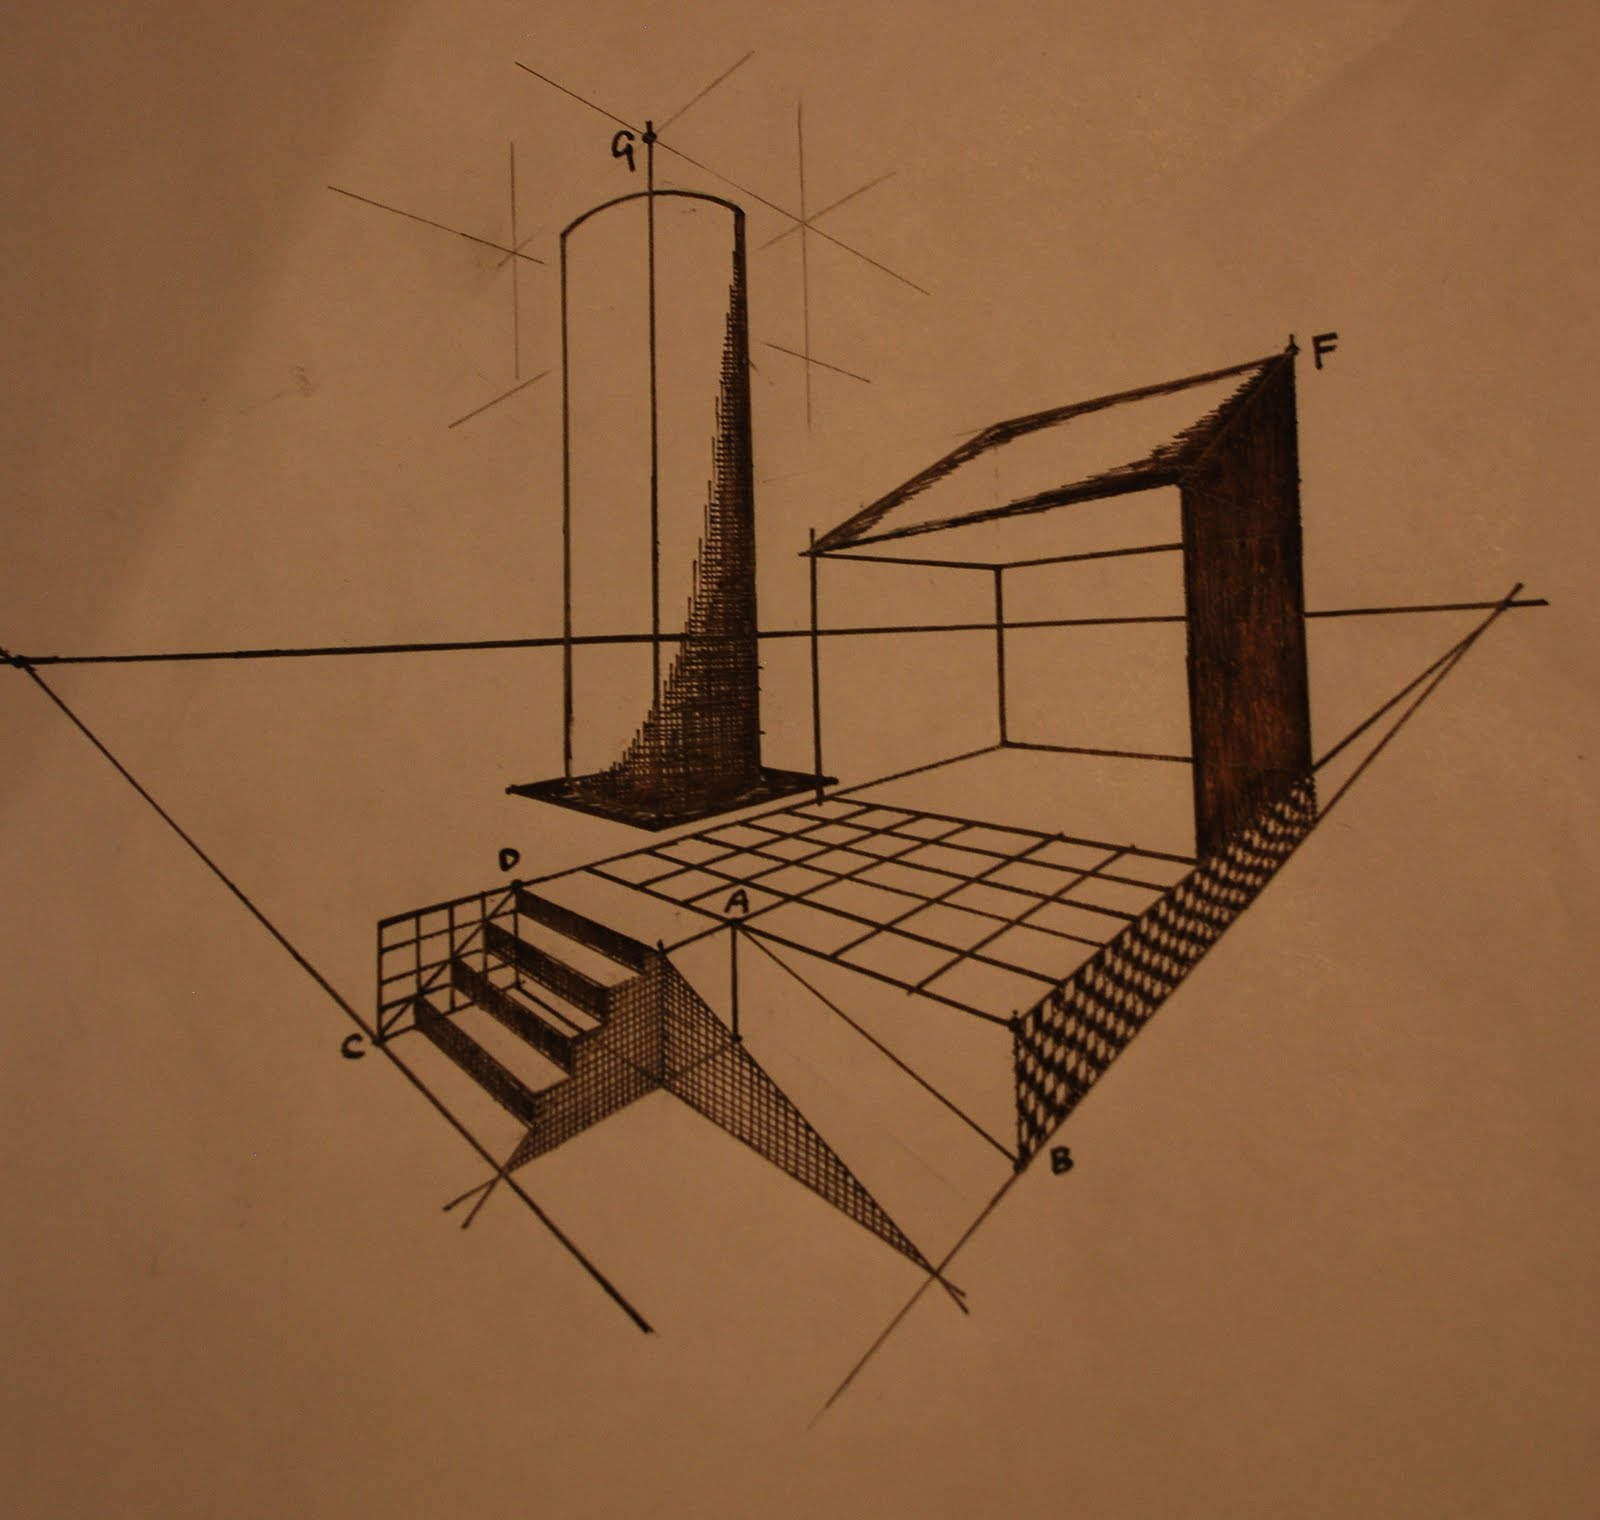 architectural communications: 3D perspective drawing